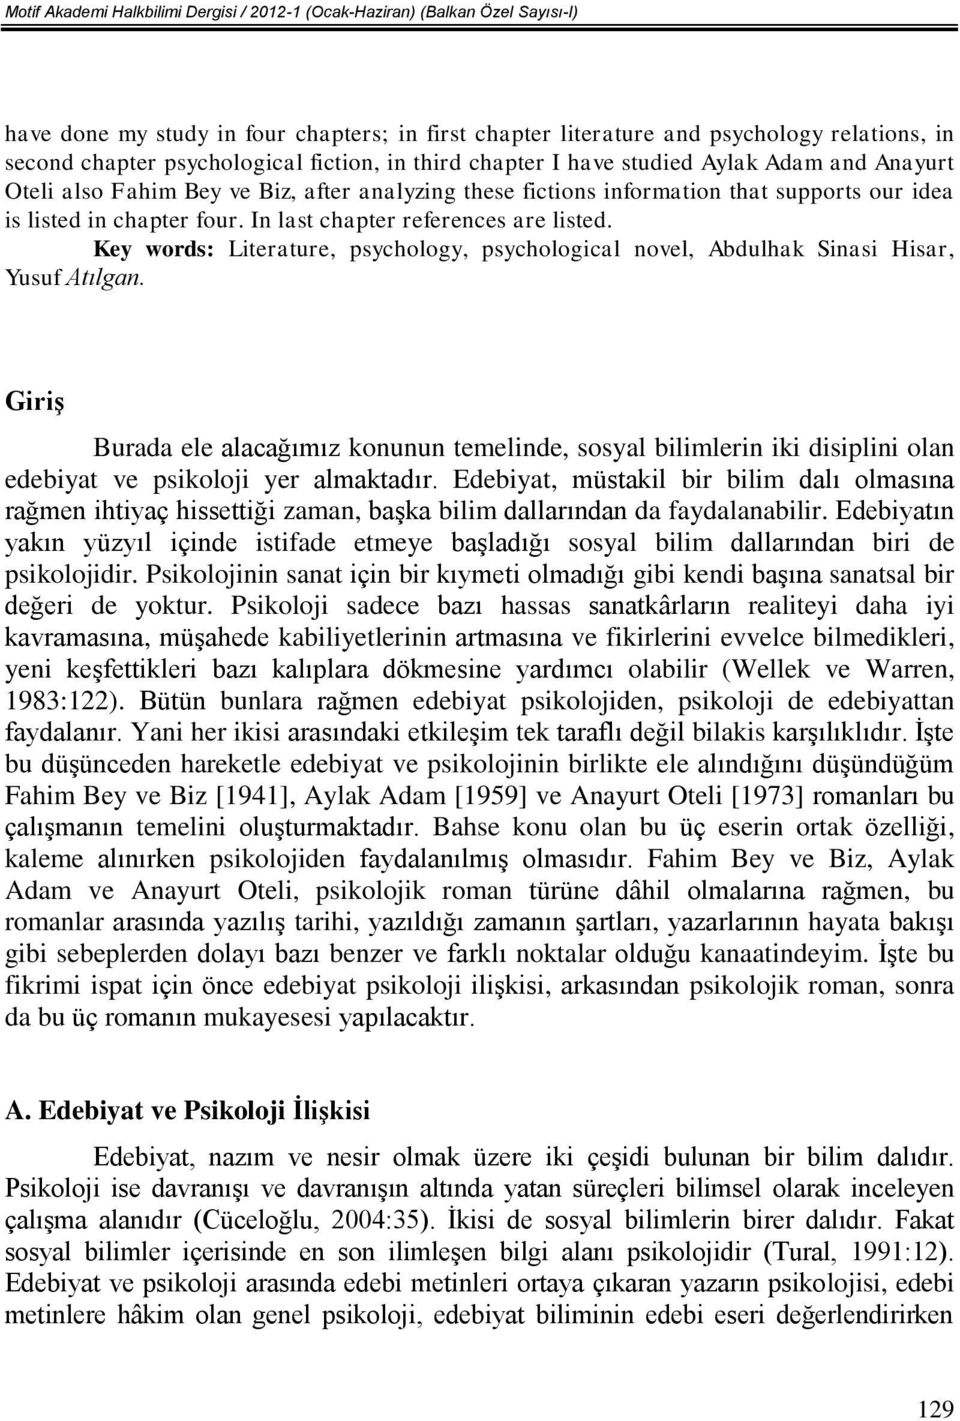 In last chapter references are listed. Key words: Literature, psychology, psychological novel, Abdulhak Sinasi Hisar, Yusuf Atılgan.